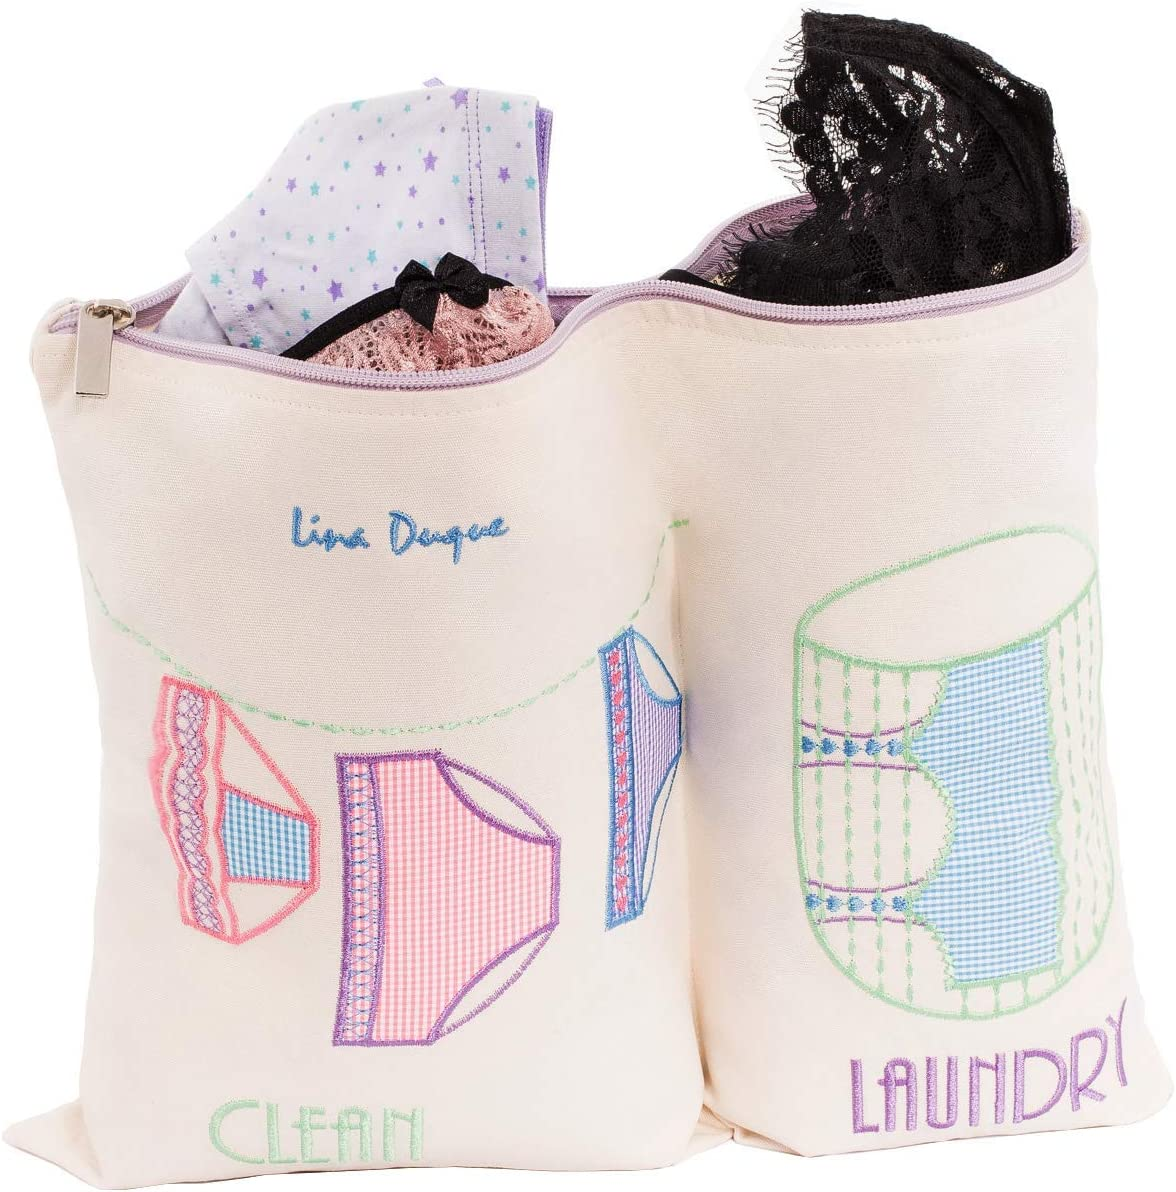 Lina Duque LIngerie bags for Laundry Suitcase organizer 2 Divisions Clean and Dirty Clothes Size 16x12.5 inches